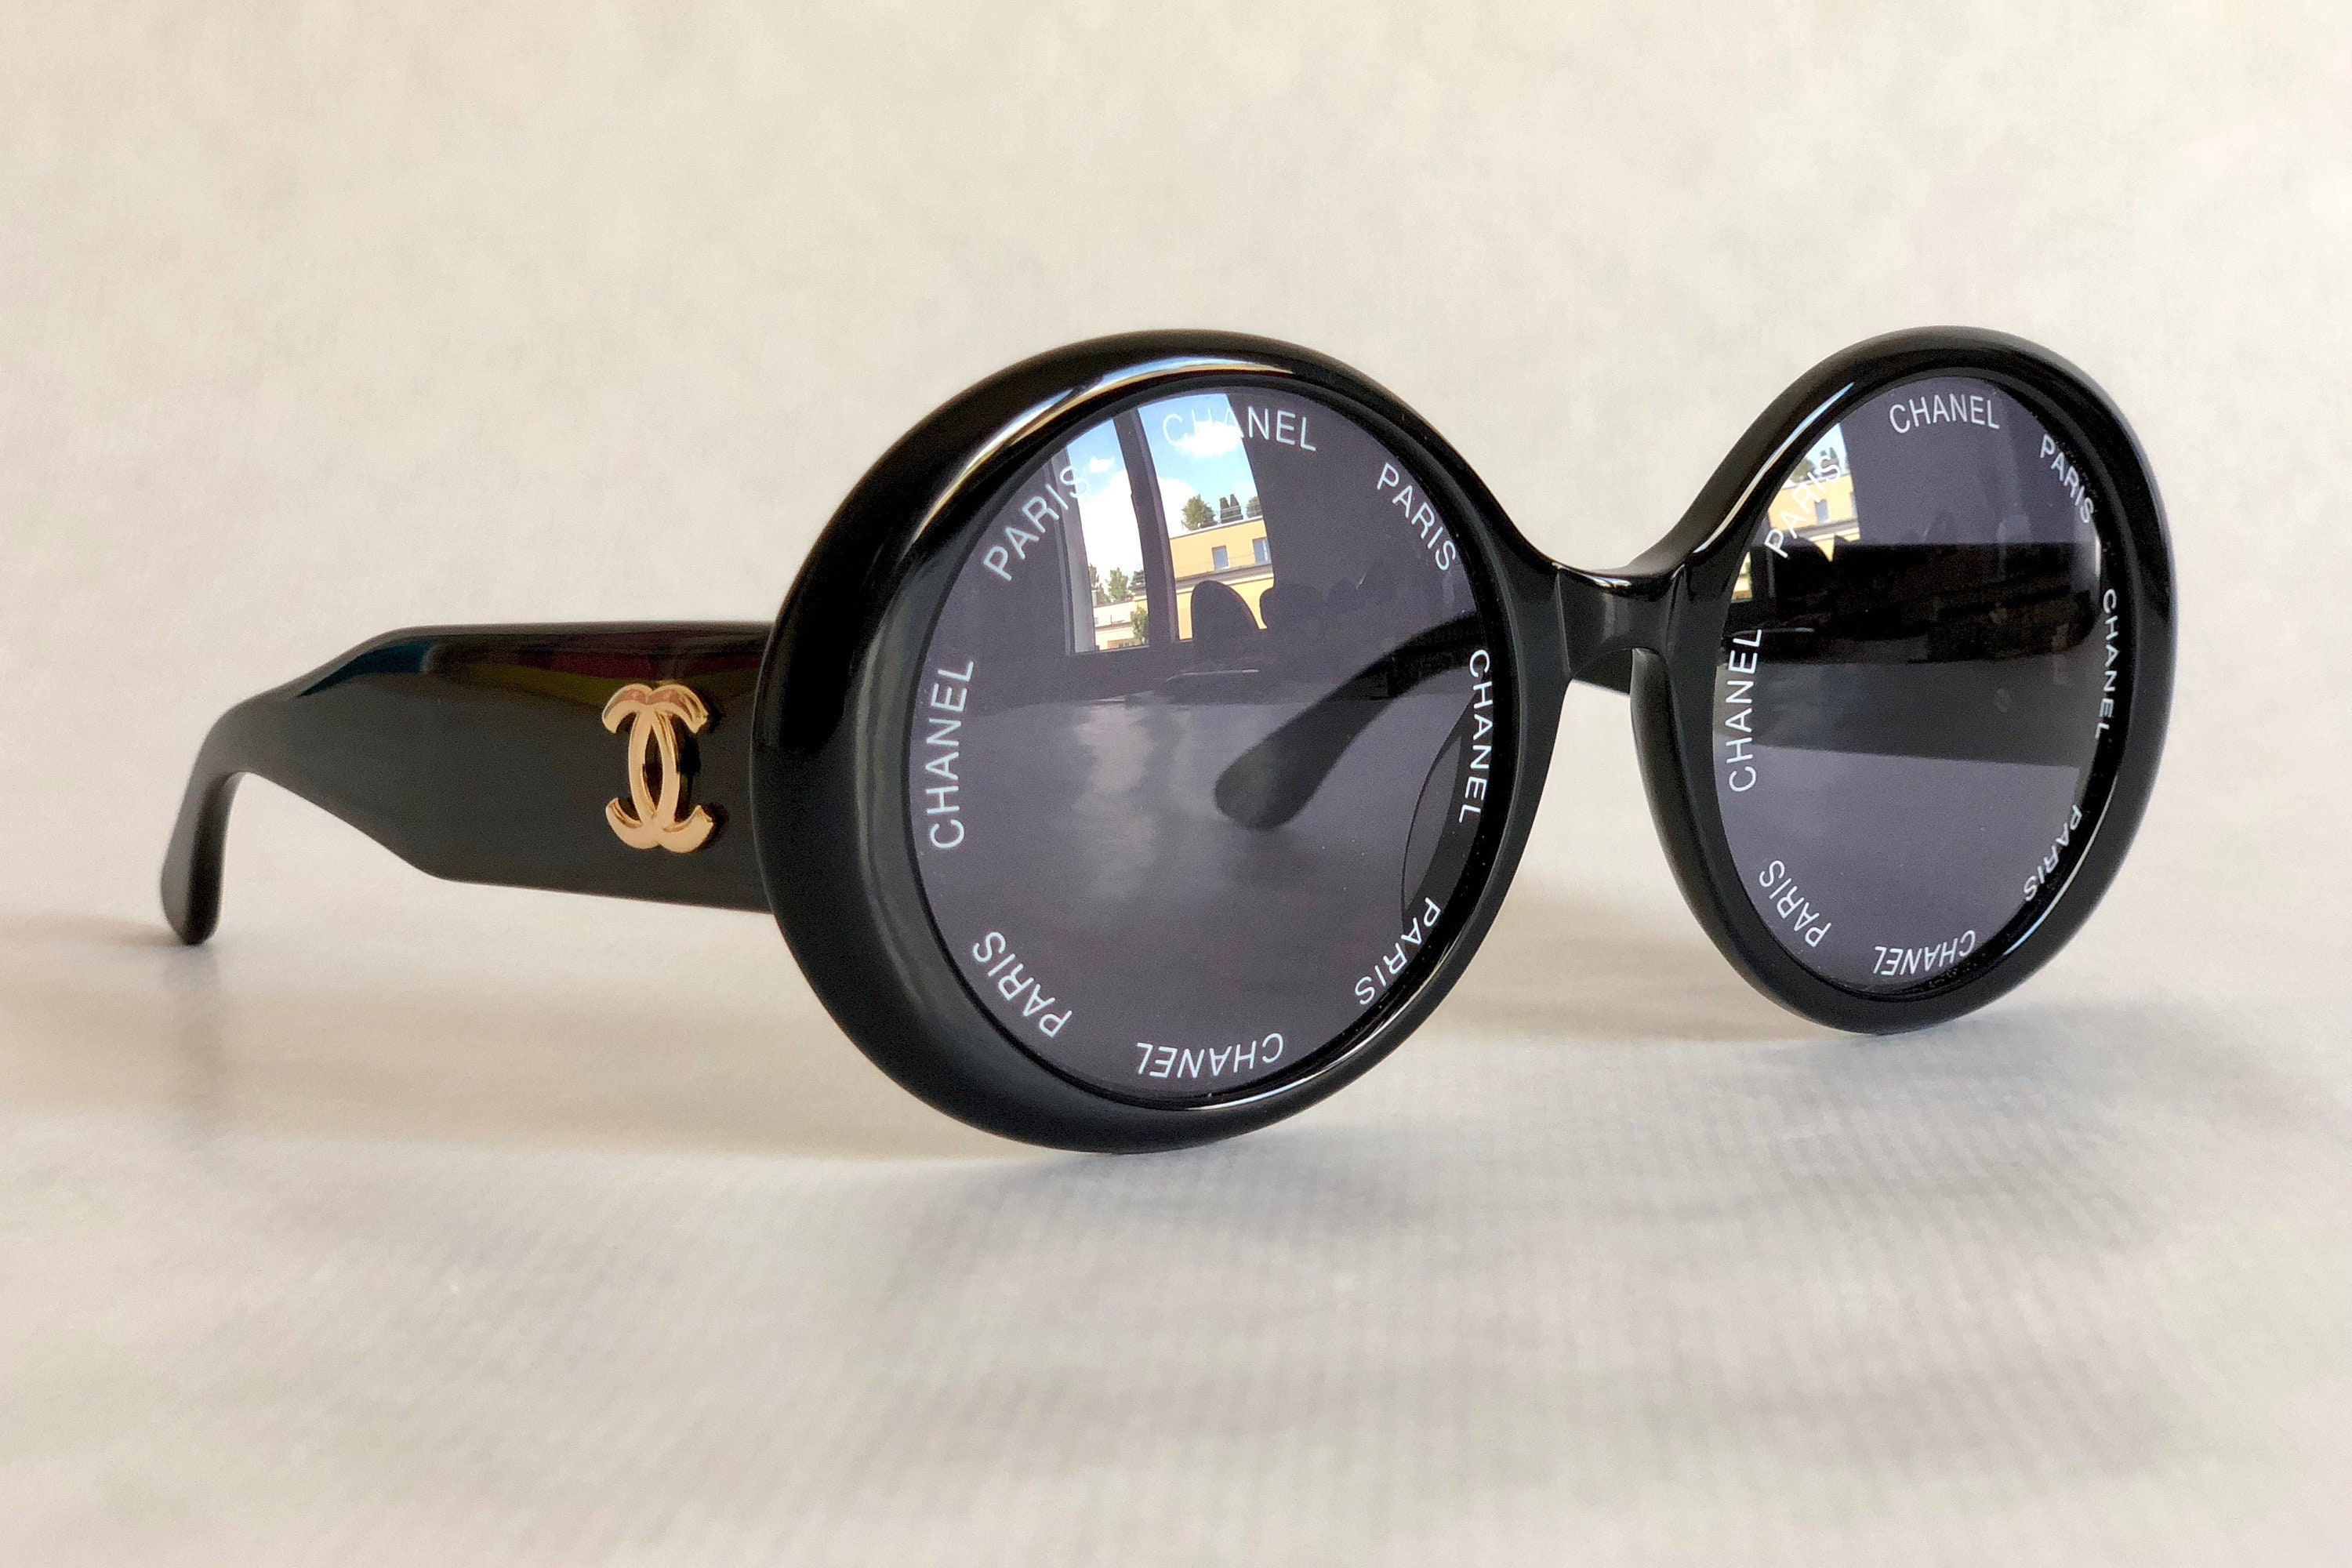 cc3ed32997646 CHANEL 01949 94305 Vintage Sunglasses New Old Stock including ...